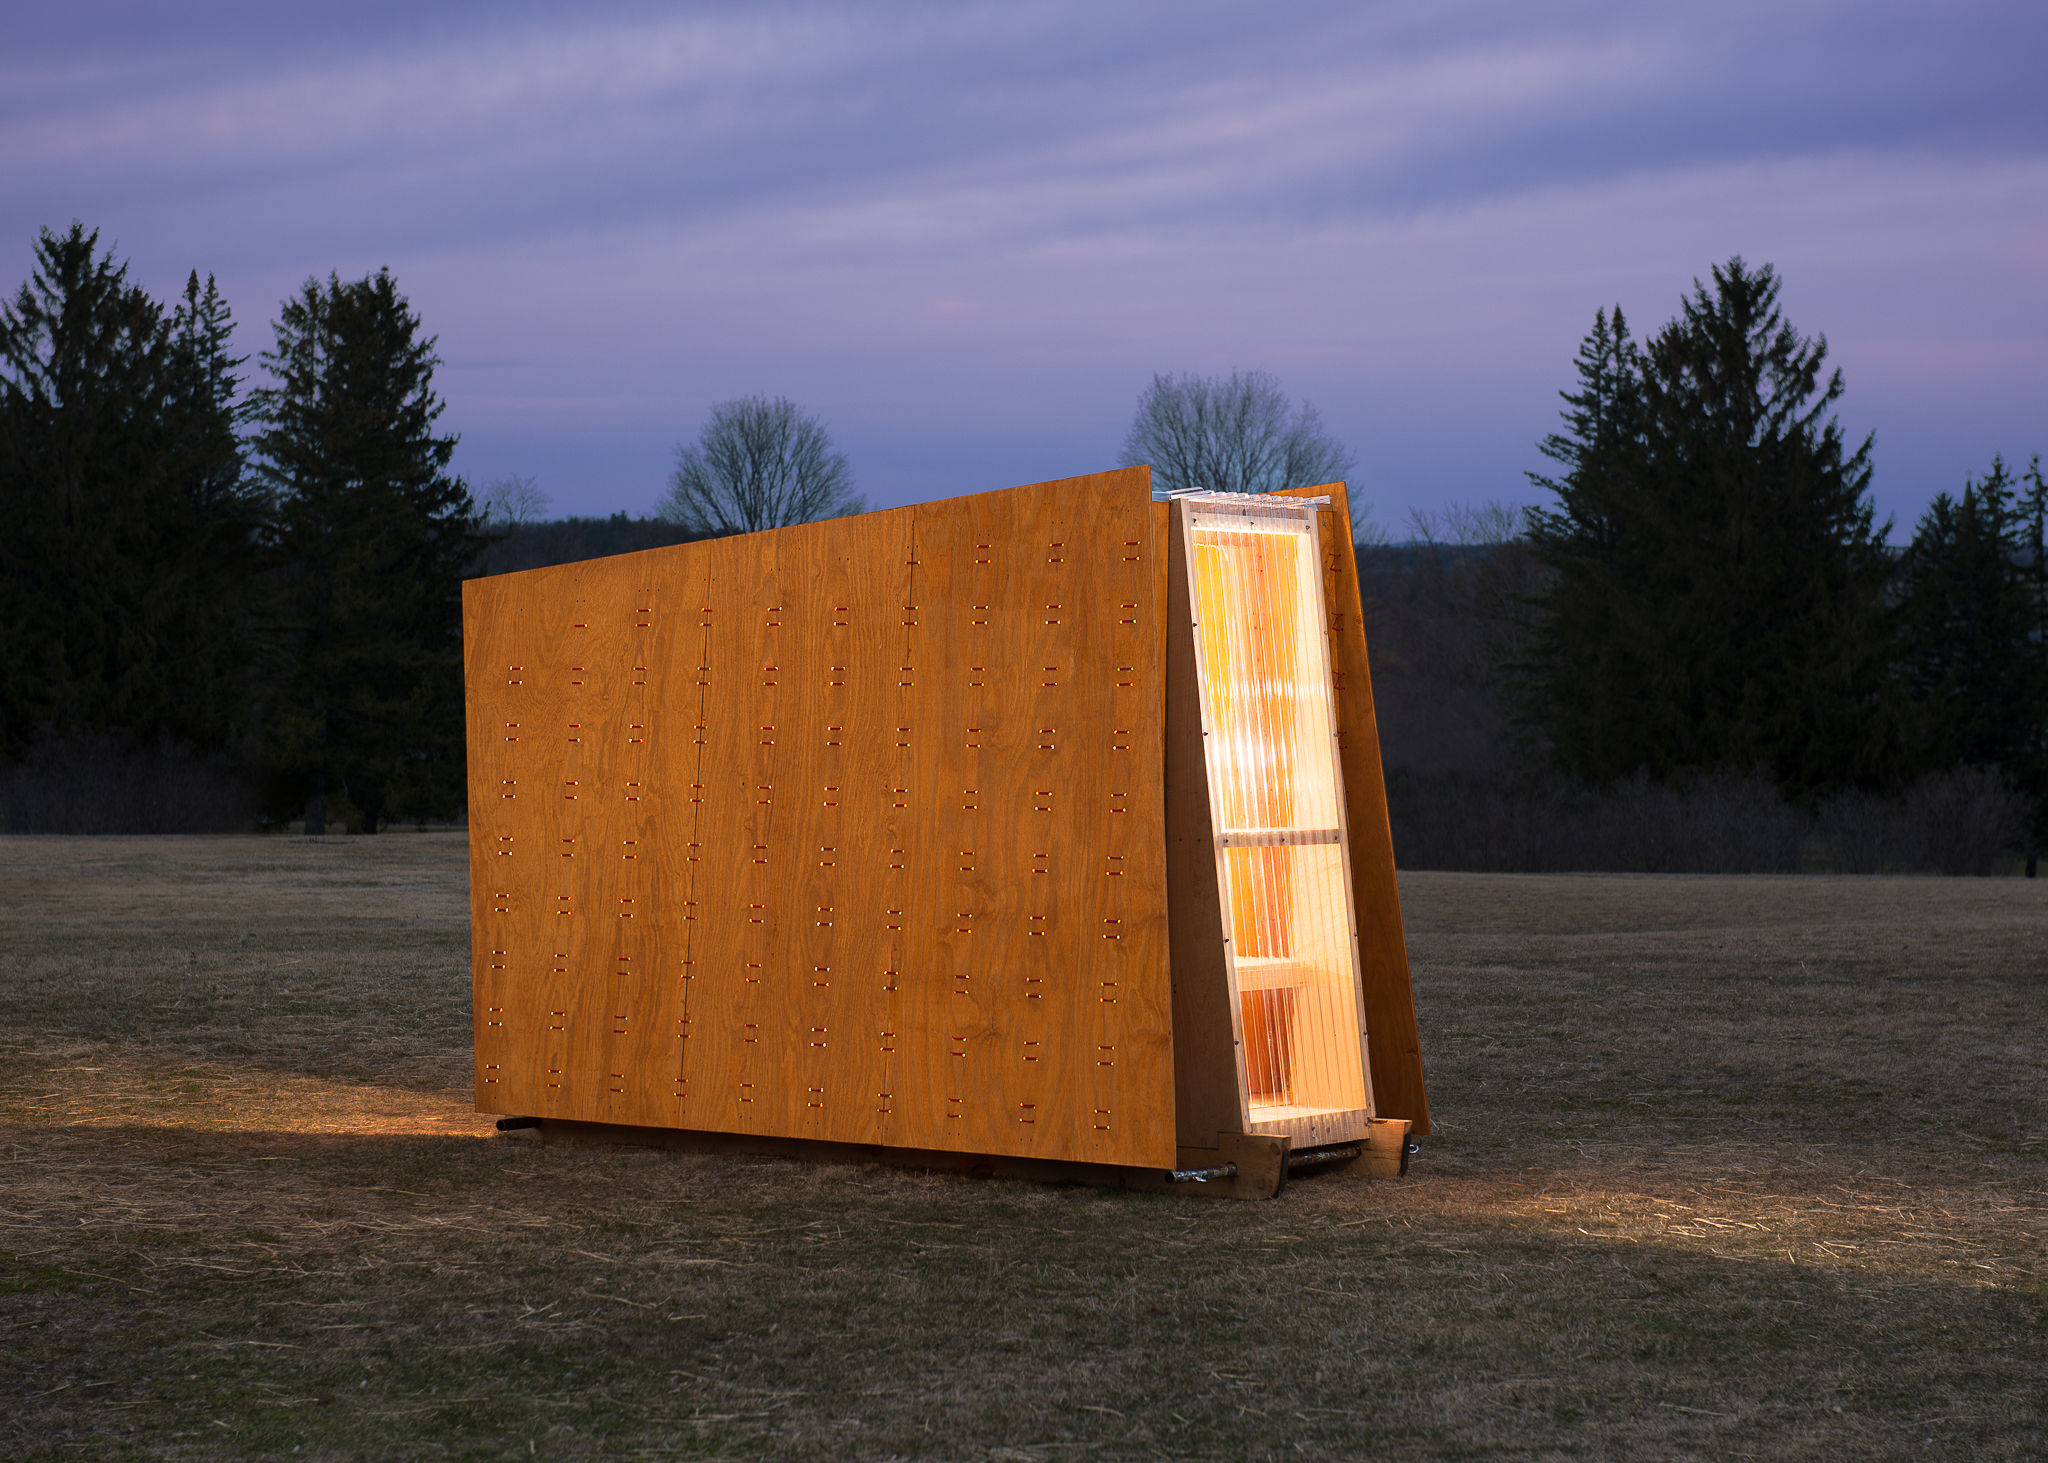 The Ice Ark at dusk. No signs of winter here on the lawn of the Shelburne Museum.